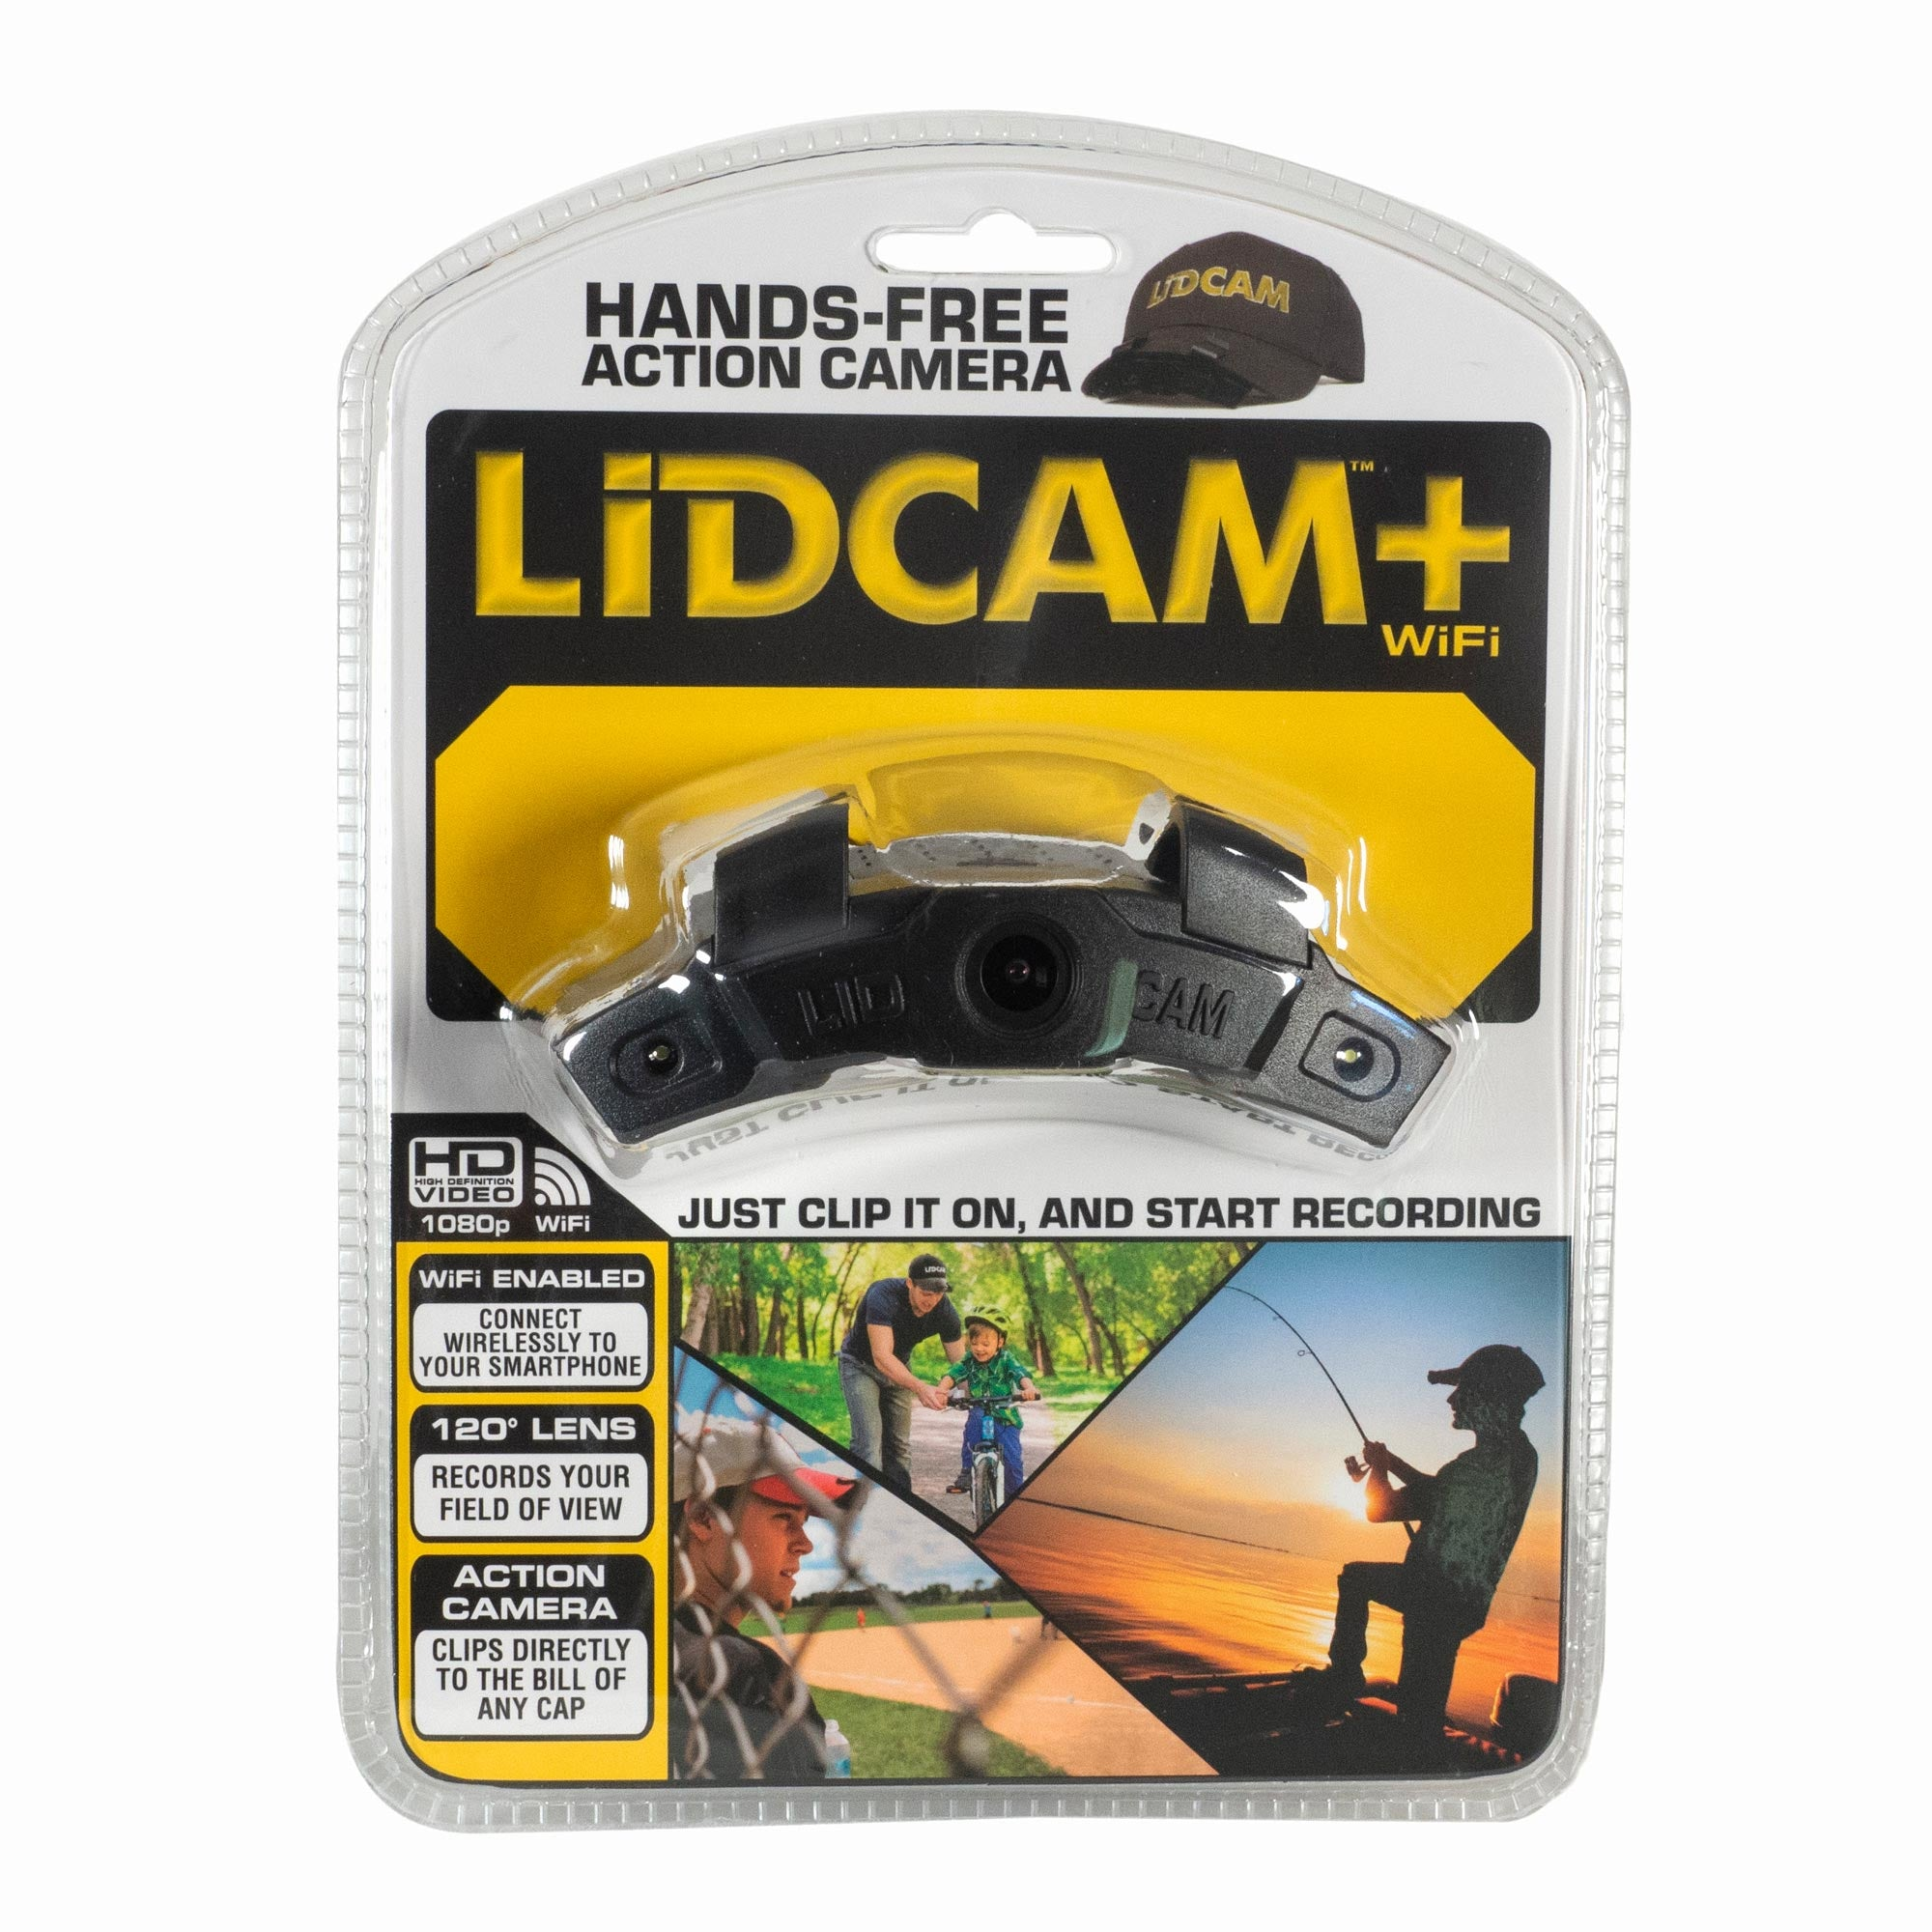 Lidcam+ Pro Series w/ WiFi + Zoom - Black